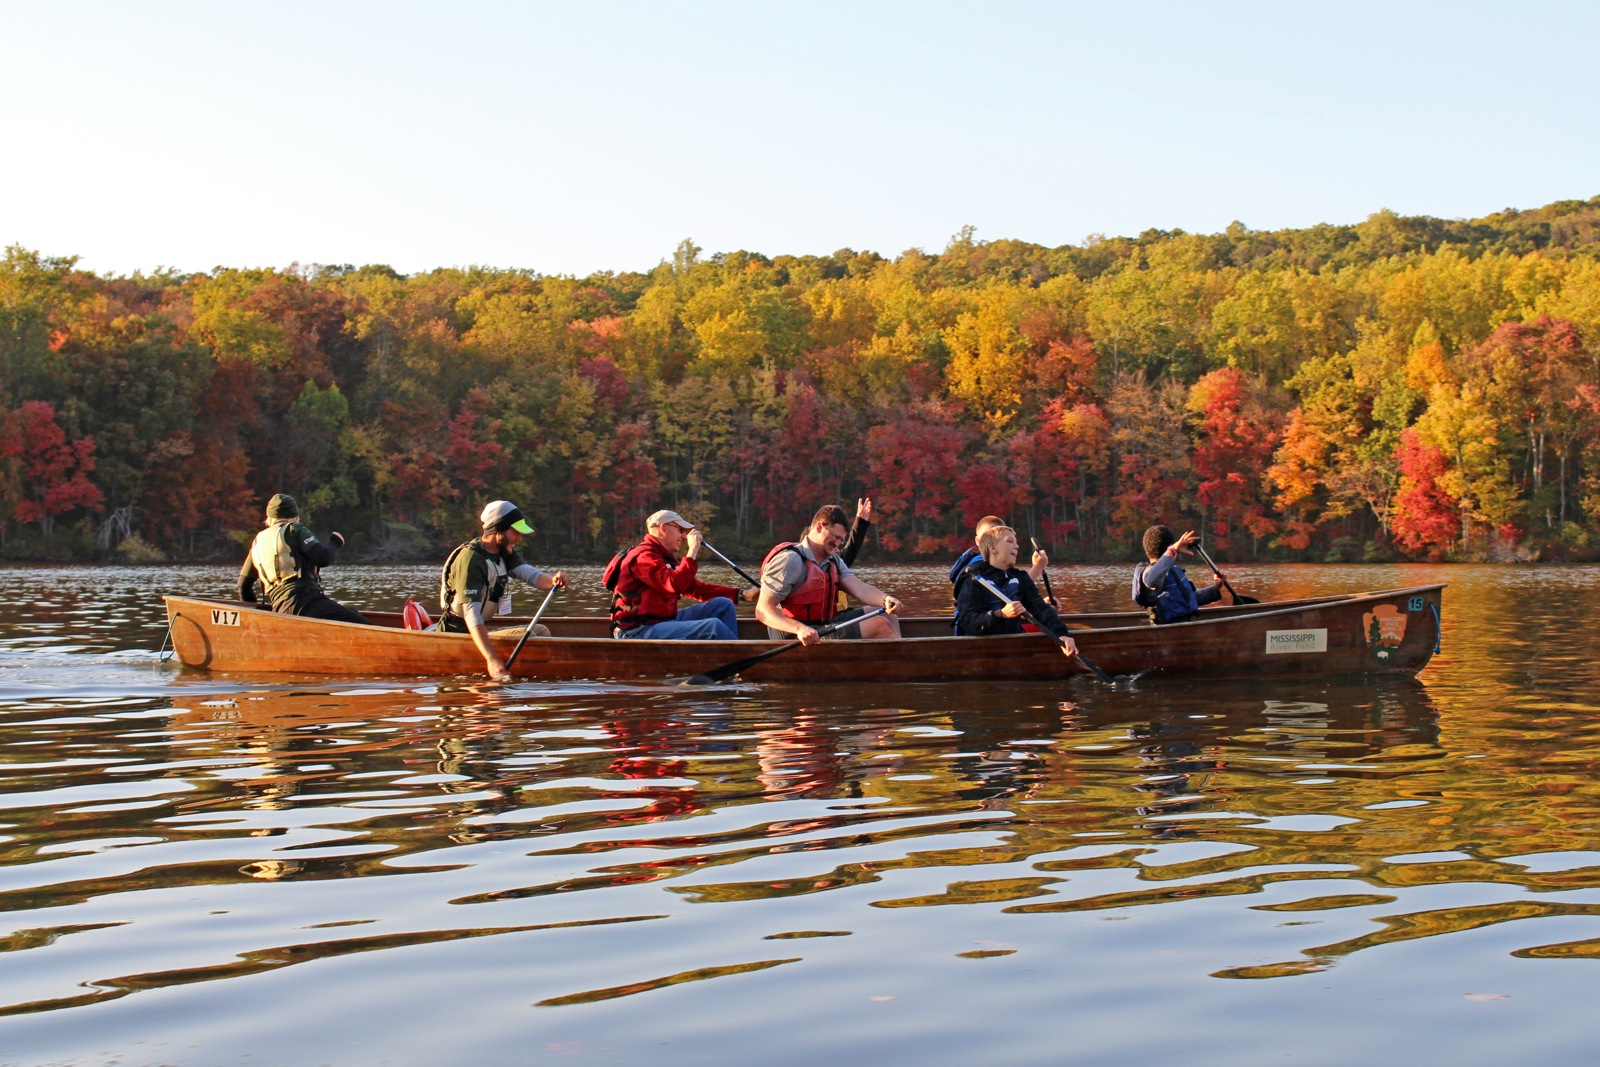 an action shot of participants paddling their canoe along a calm river in the fall